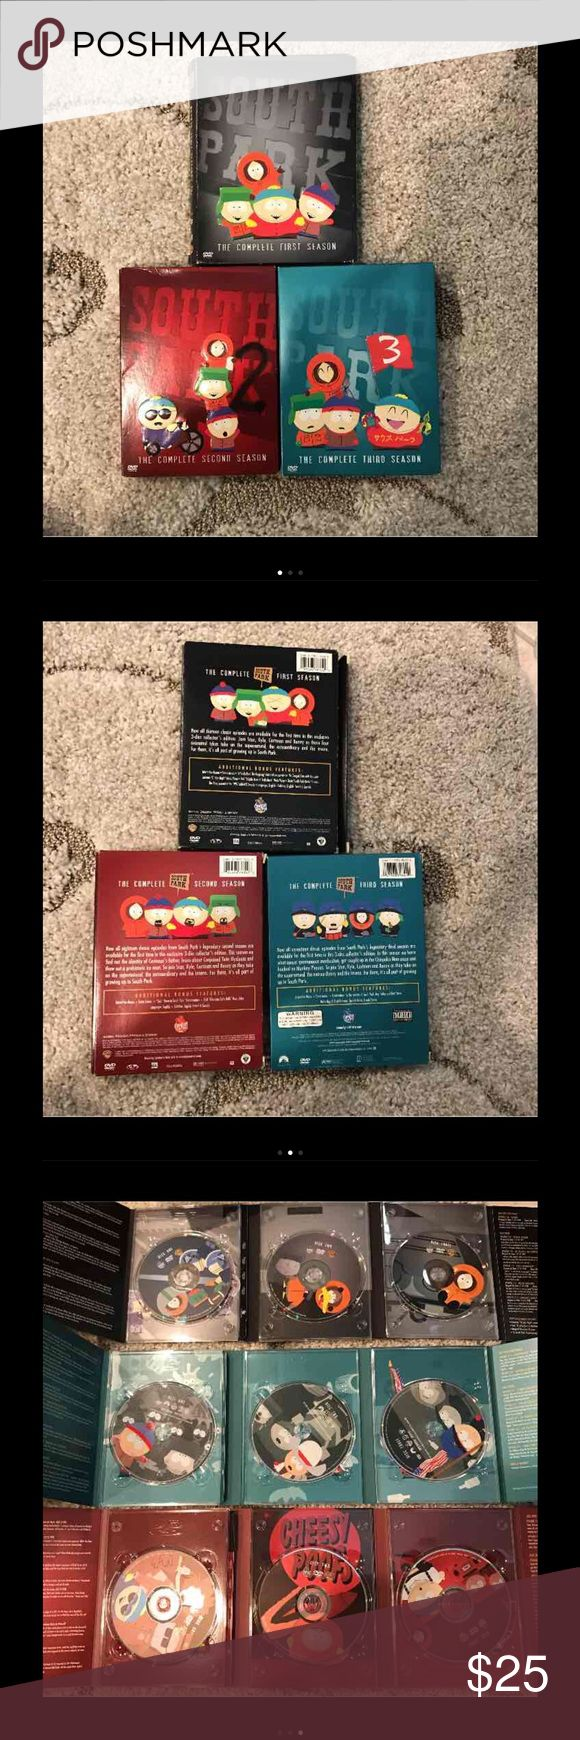 South Park Seasons 1-3 DVDs Seasons 1-3 Other